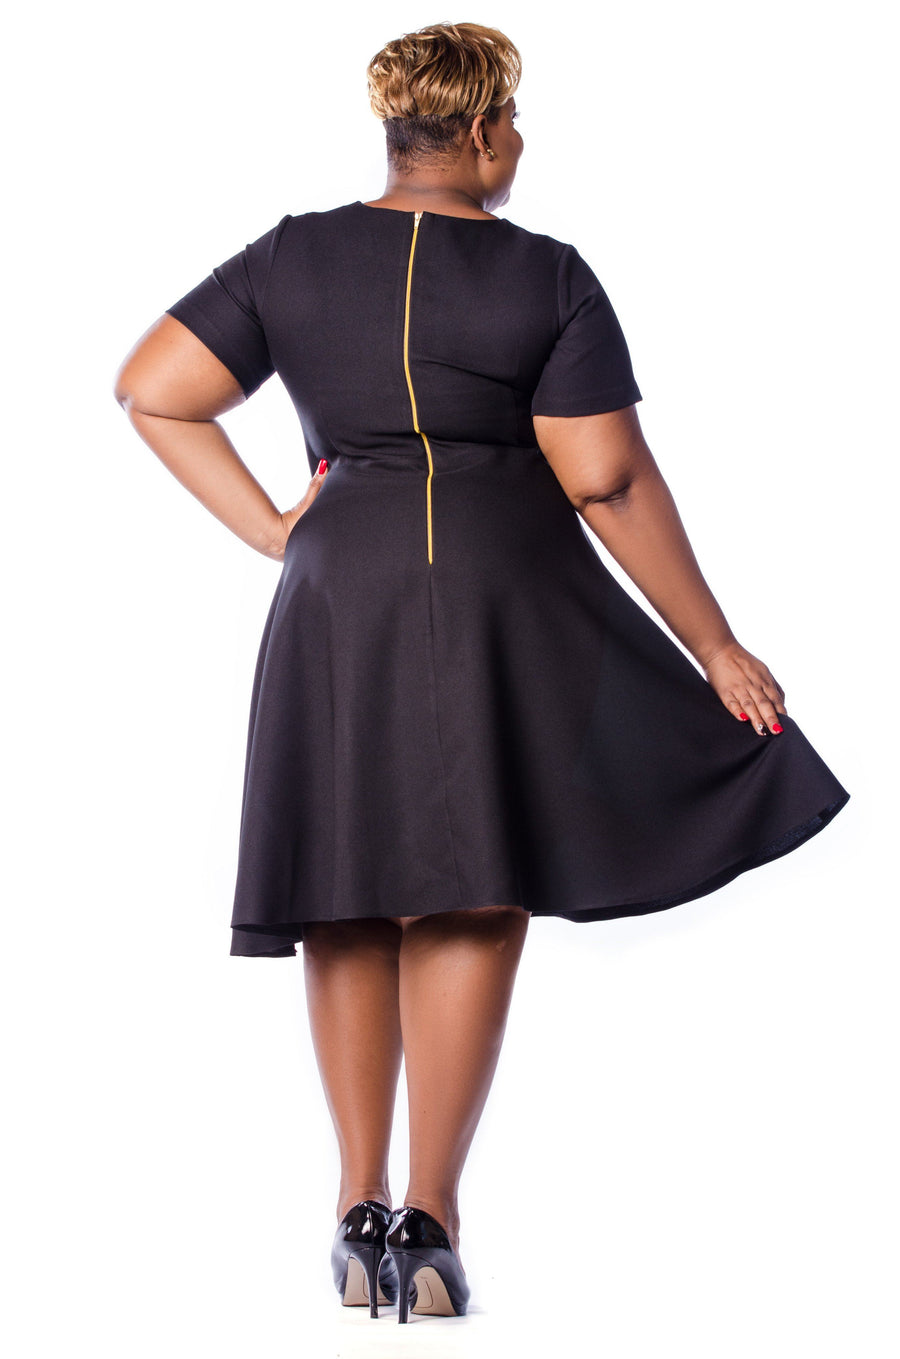 Octavia Dress Dress Phierce Plus Size 1 Black